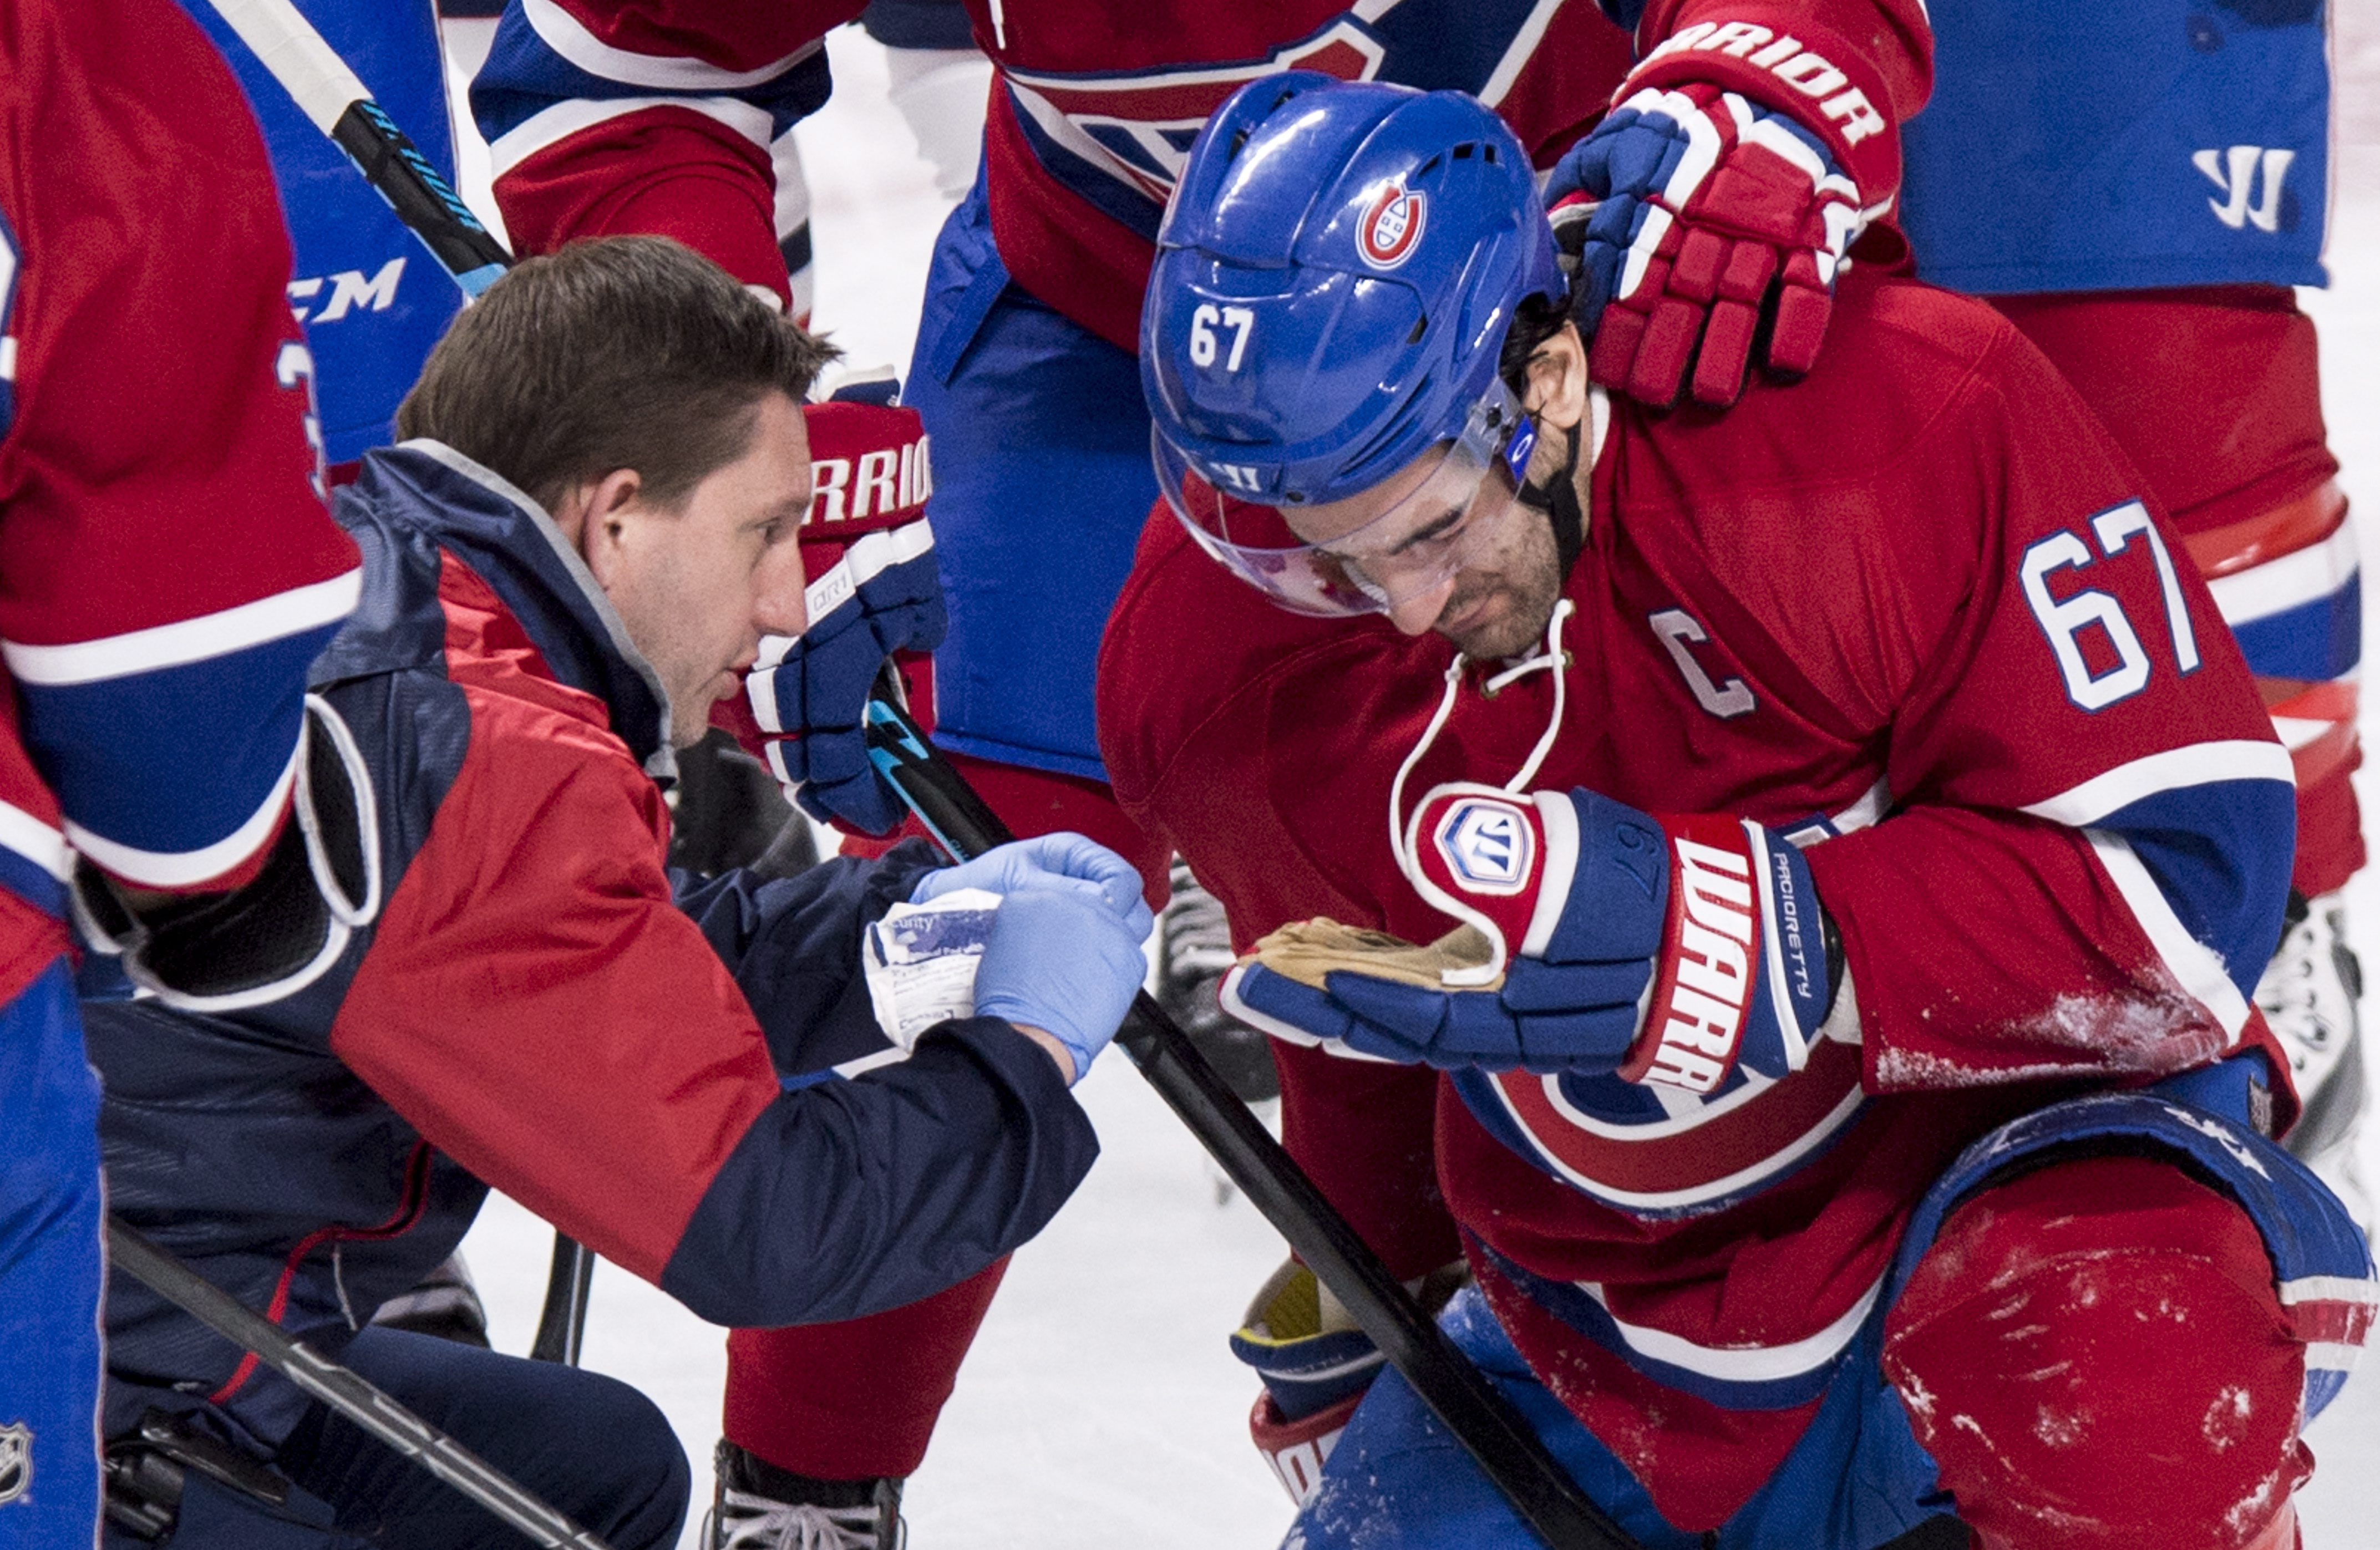 Montreal Canadiens' Max Pacioretty is tended to following an injury during the second period of the team's NHL hockey game against the Columbus Blue Jackets on Tuesday, Jan 26, 2016, in Montreal. (Paul Chiasson/The Canadian Press via AP)